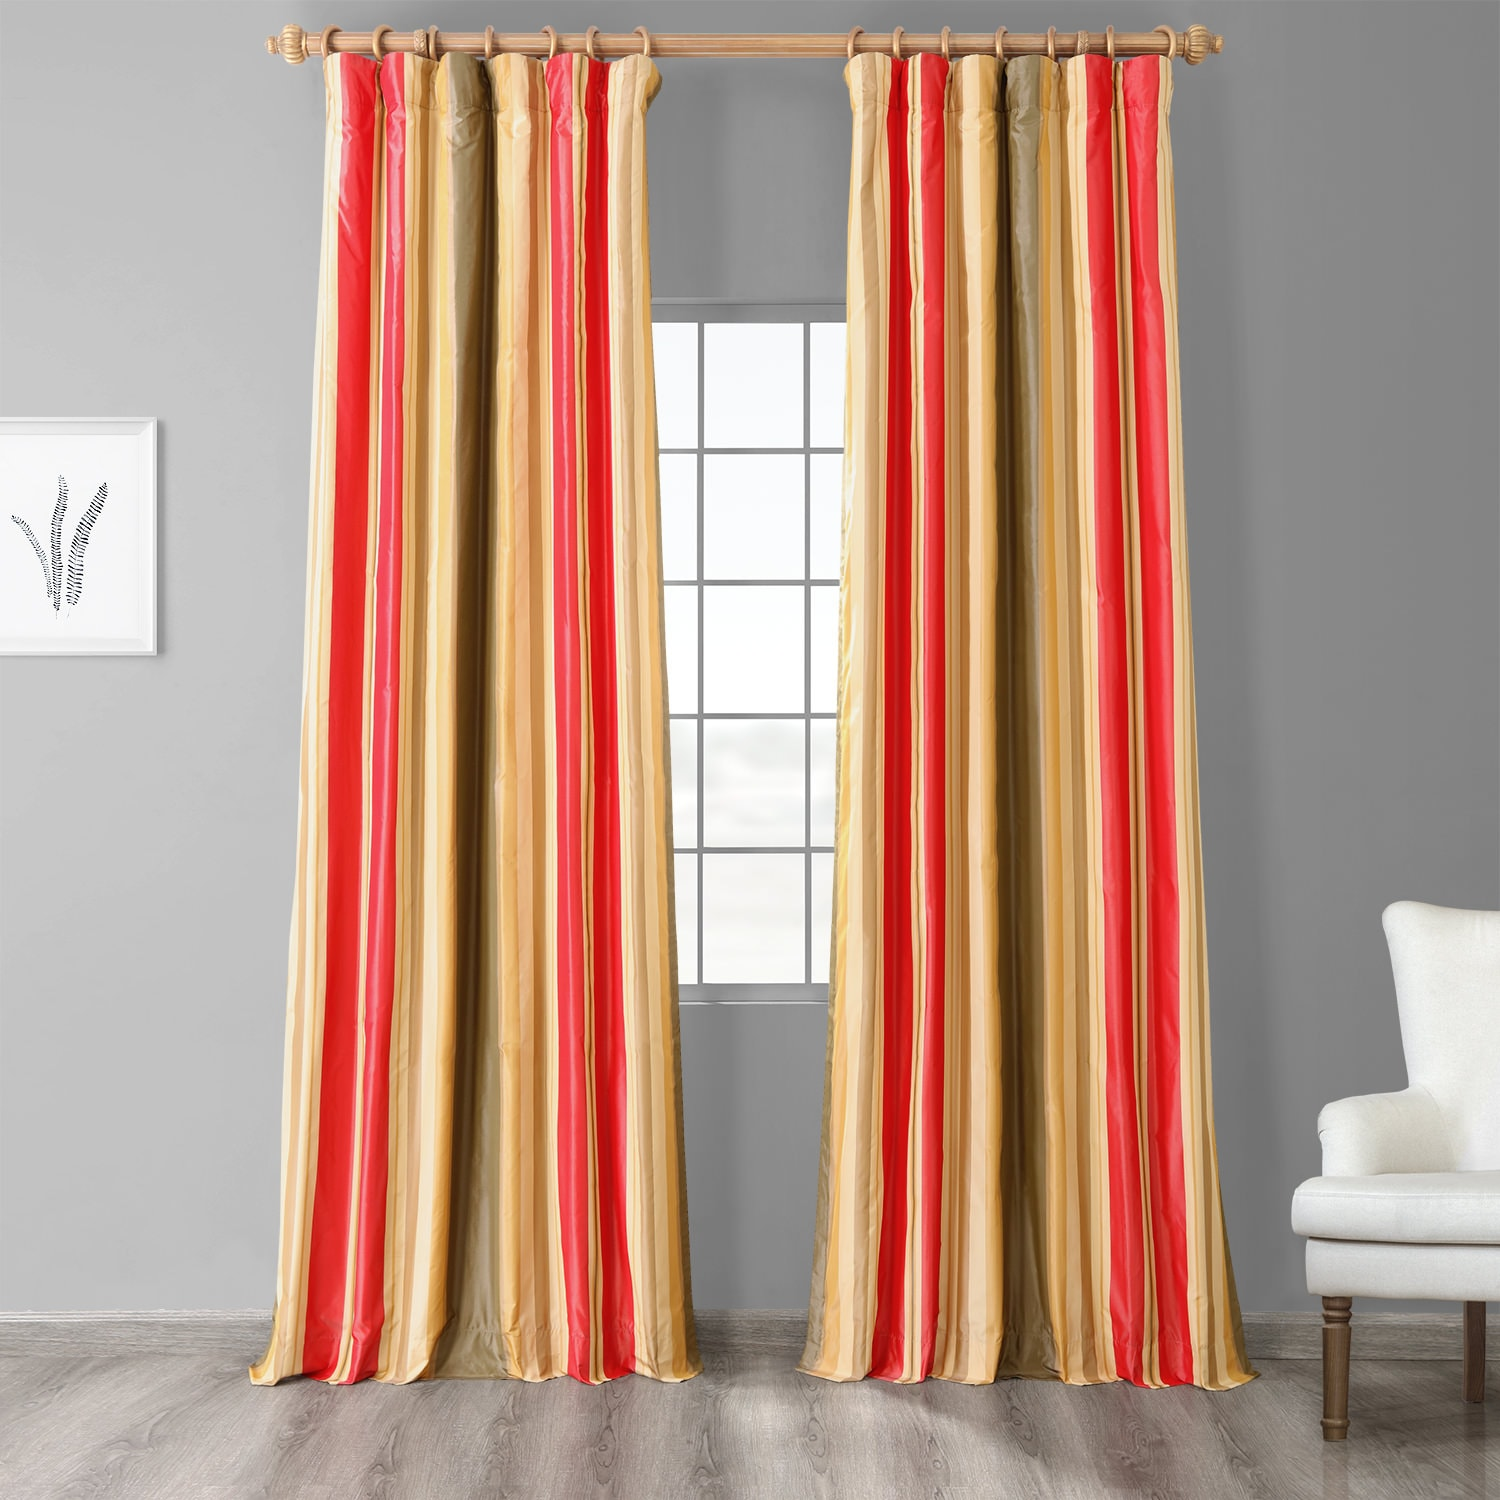 Orleans Bright Red & Gold Luxury Faux Silk Striped Curtain